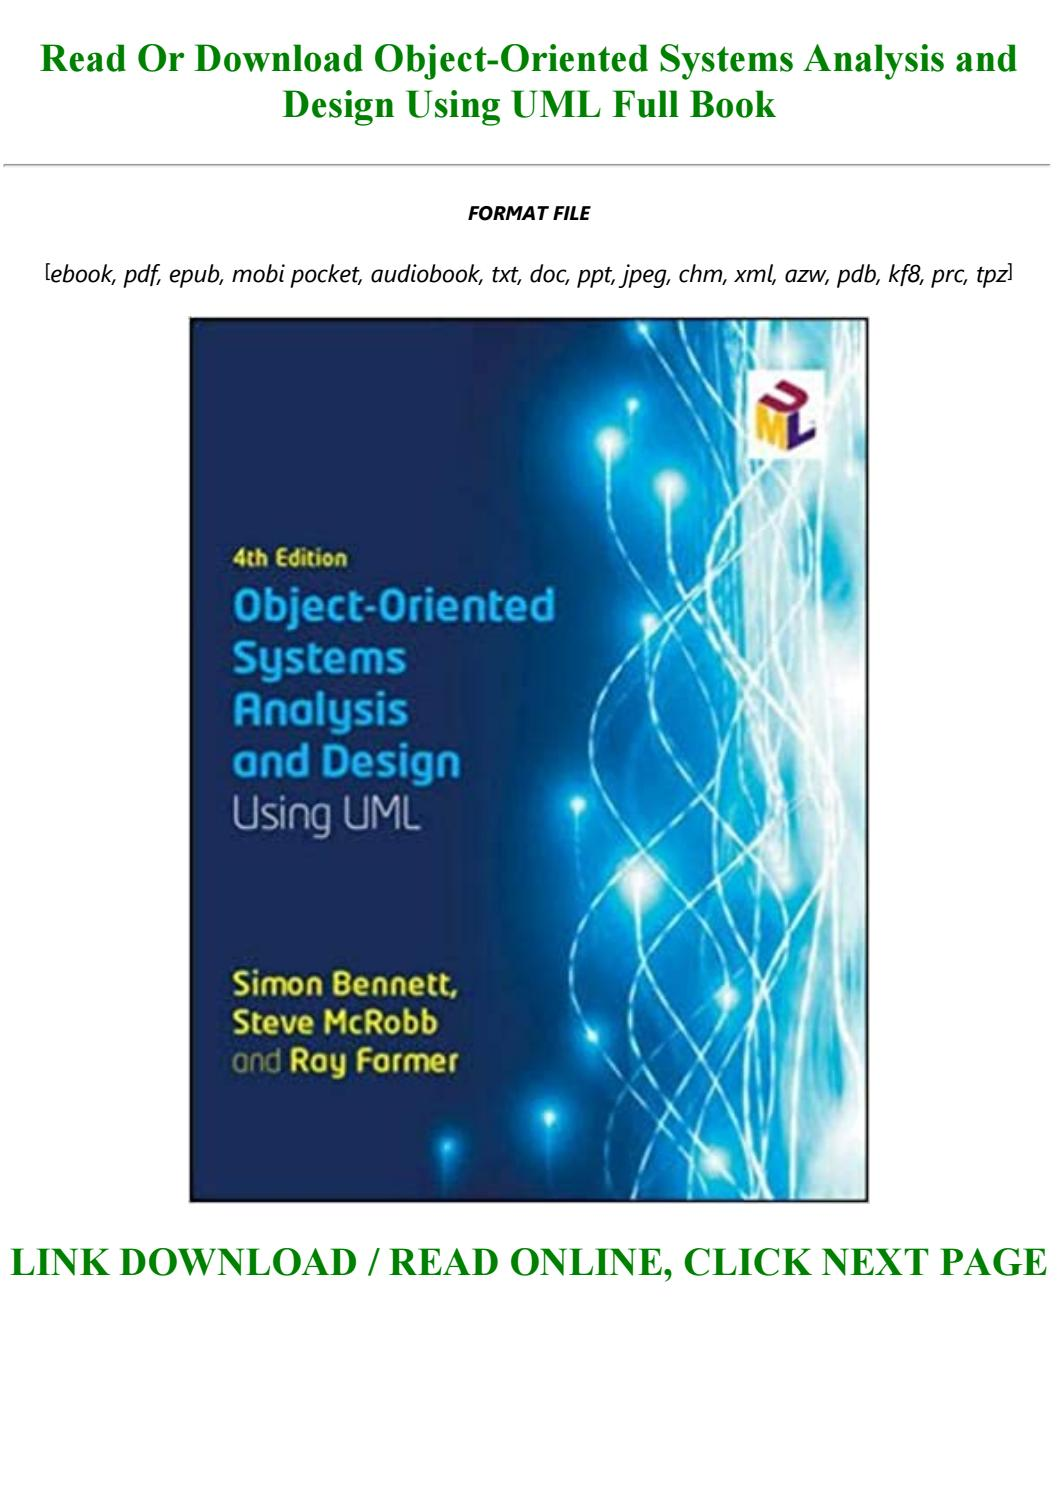 P D F Download Object Oriented Systems Analysis And Design Using Uml Full Audiobook By Izabelle4545 Issuu